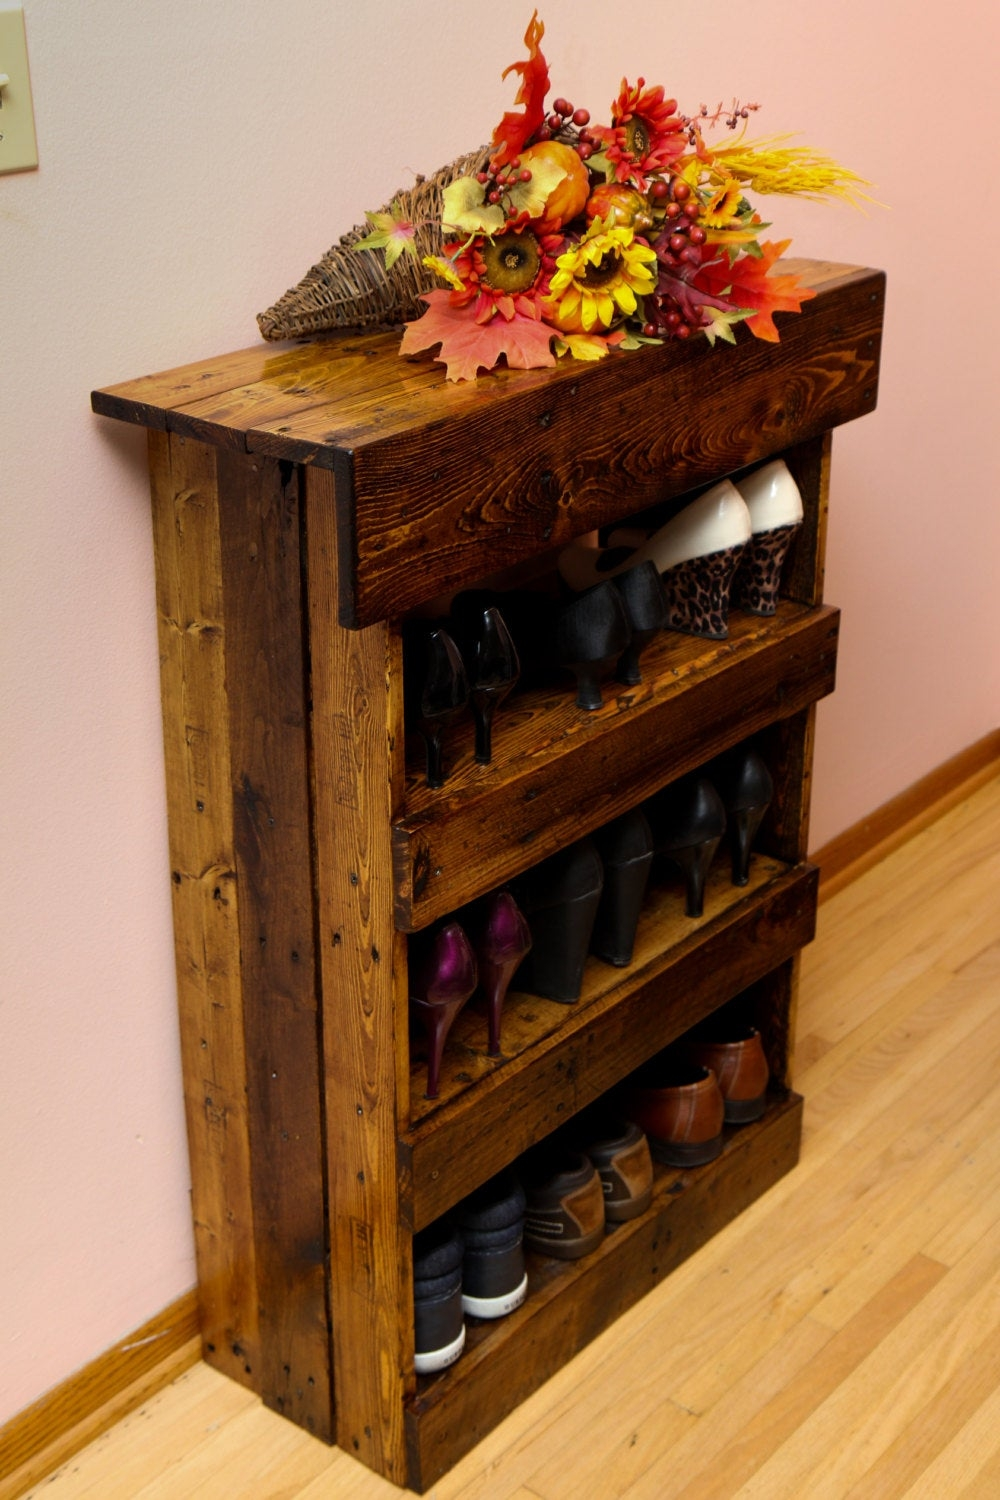 Sturdy and gorgeous looking rustic shoe